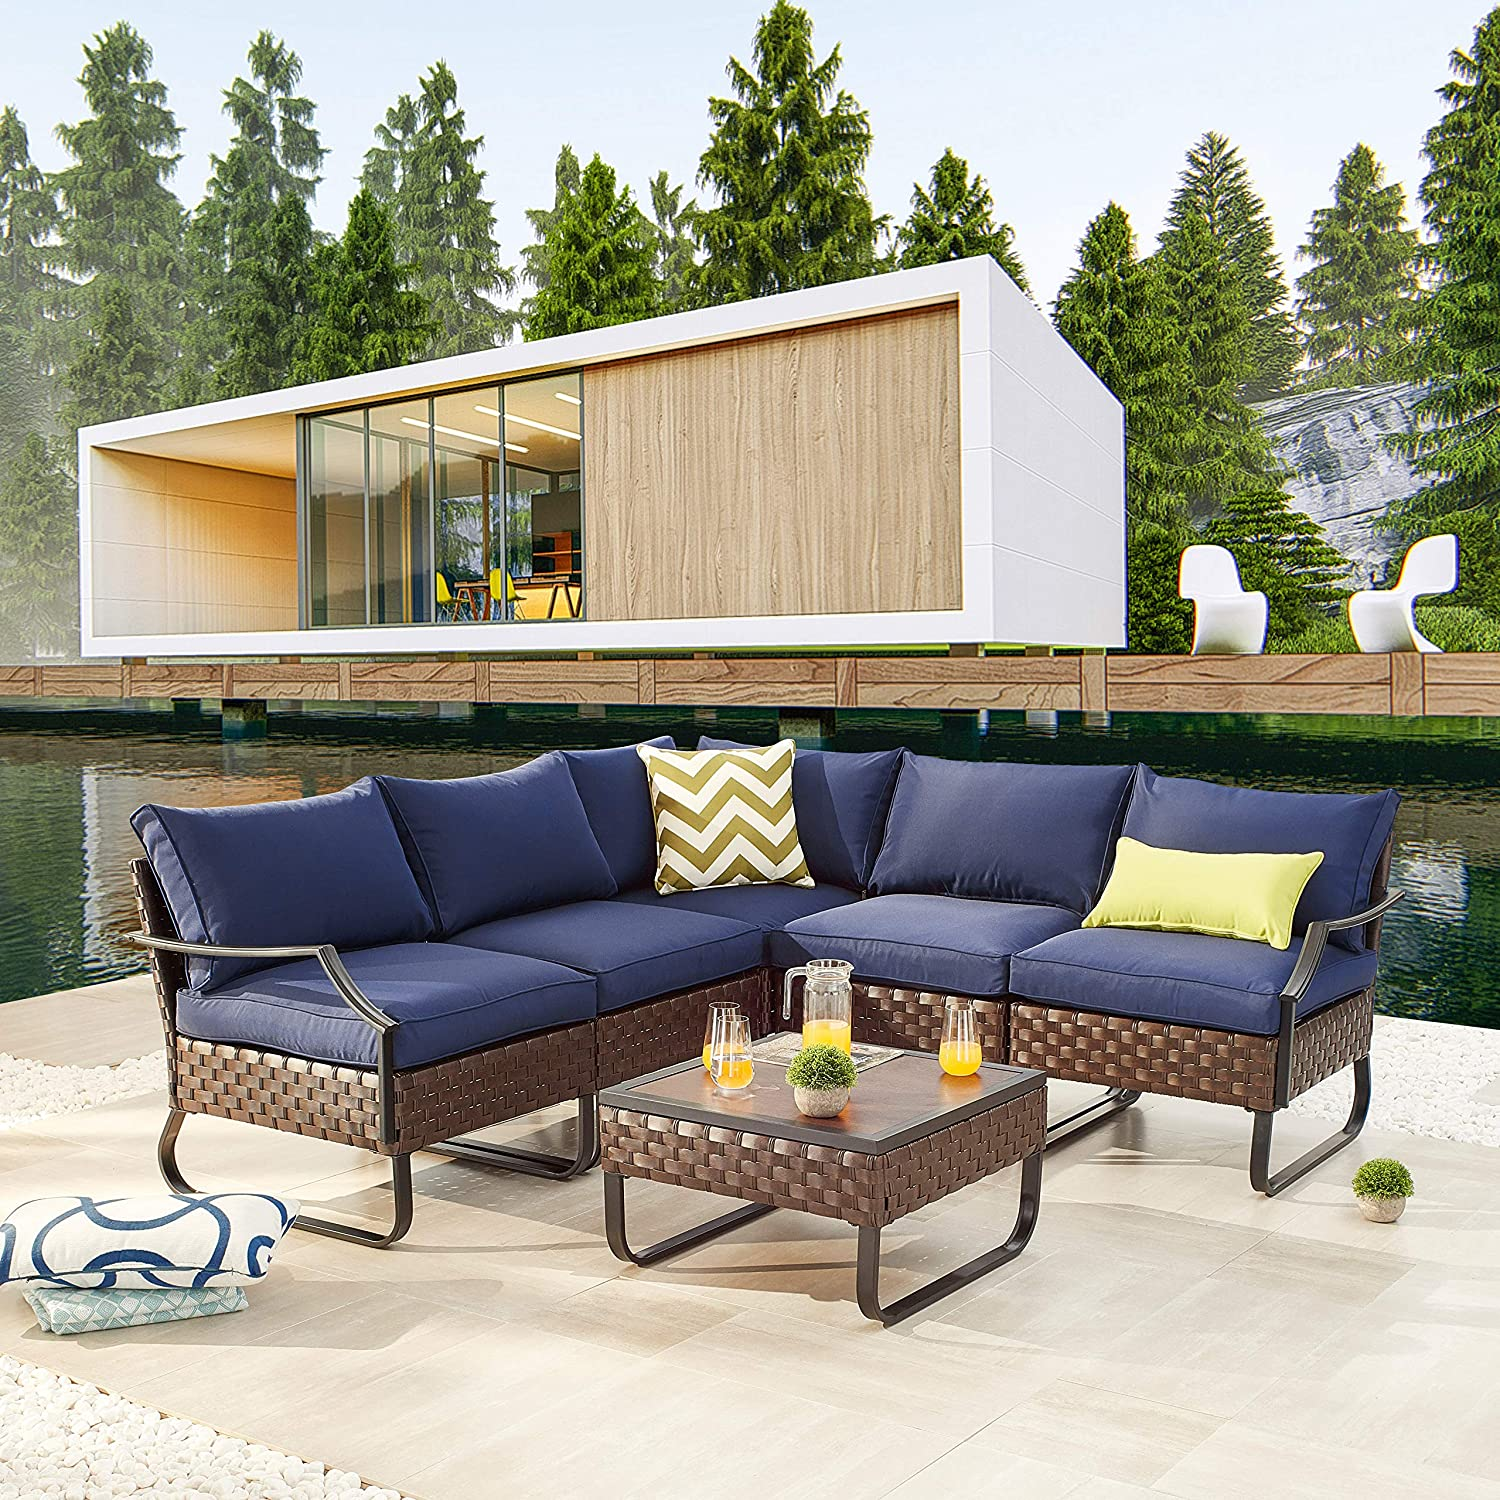 LOKATSE HOME Sectional Conversation Sofa 6 Pcs Outdoor Patio Rattan Furniture Set All-Weather Wicker Metal Frame Chairs with Cushion & Coffee Table, Blue